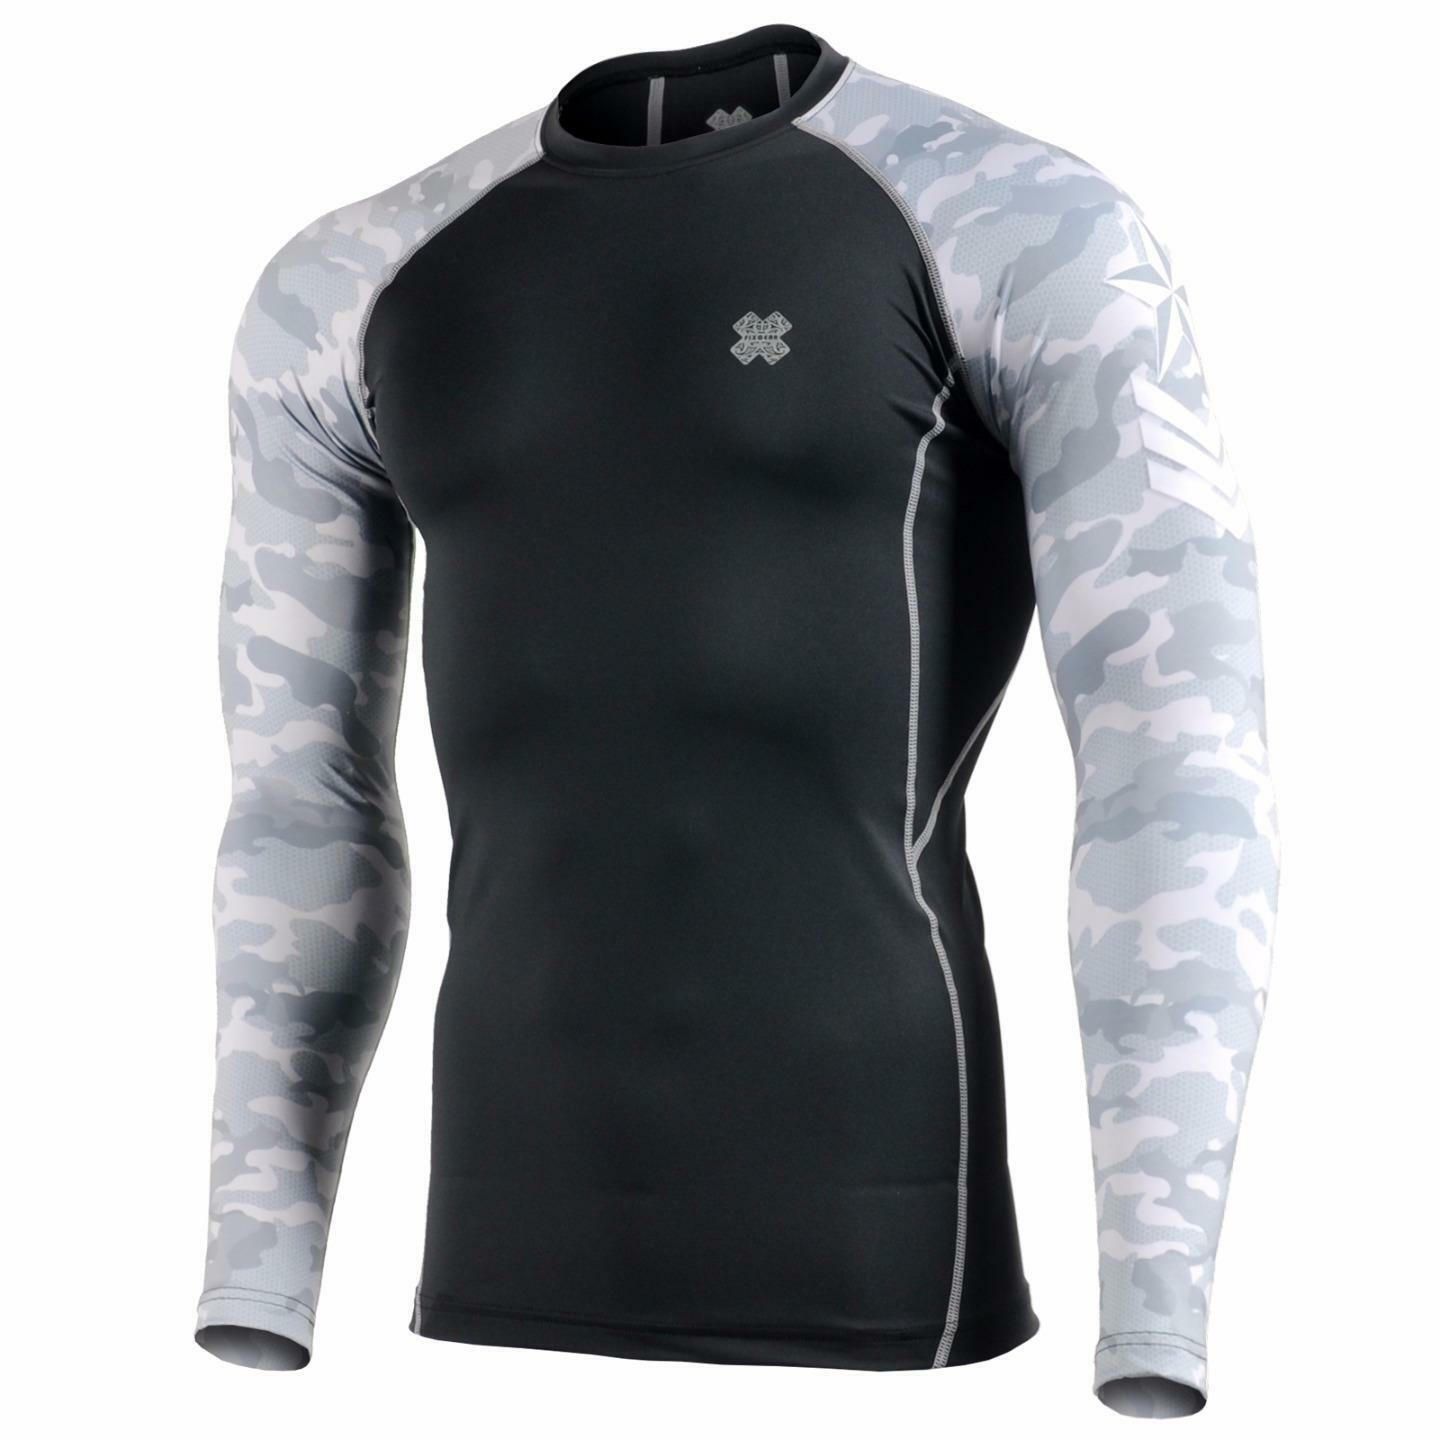 FIXGEAR CPD-BM1G Compression Base Layer Skin-tight Shirts Training Gym MMA